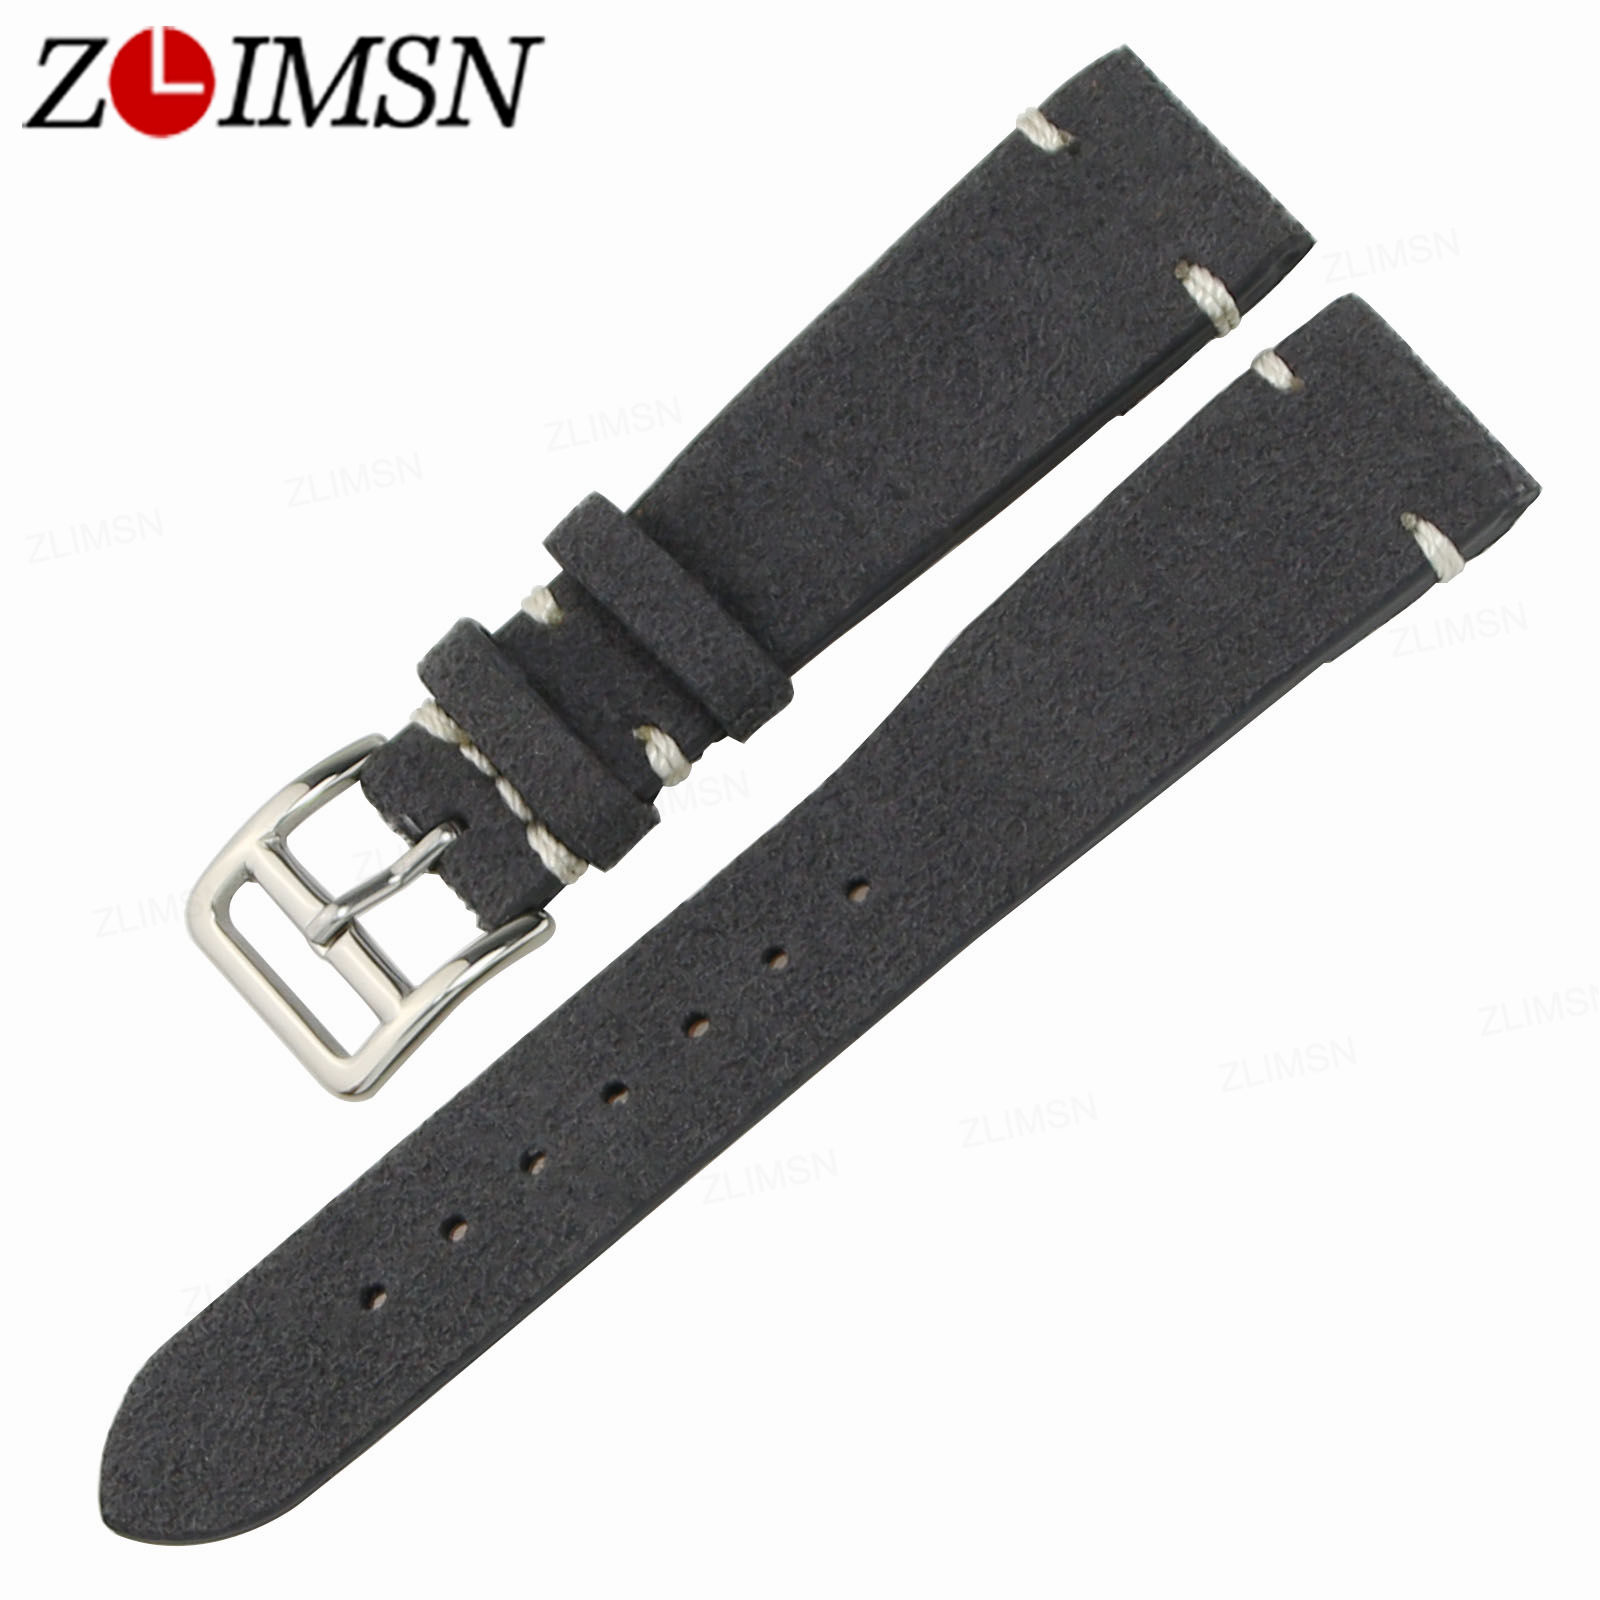 ZLIMSN Men Female Genuine Leather Watch Bands Replacement 20mm Watchbands Brown Black Yellow Grey Silver Stainless Steel Buckle zlimsn alligator leather watch bands strap watches accessories 20 22mm black brown genuine leather watchbands butterfly buckle